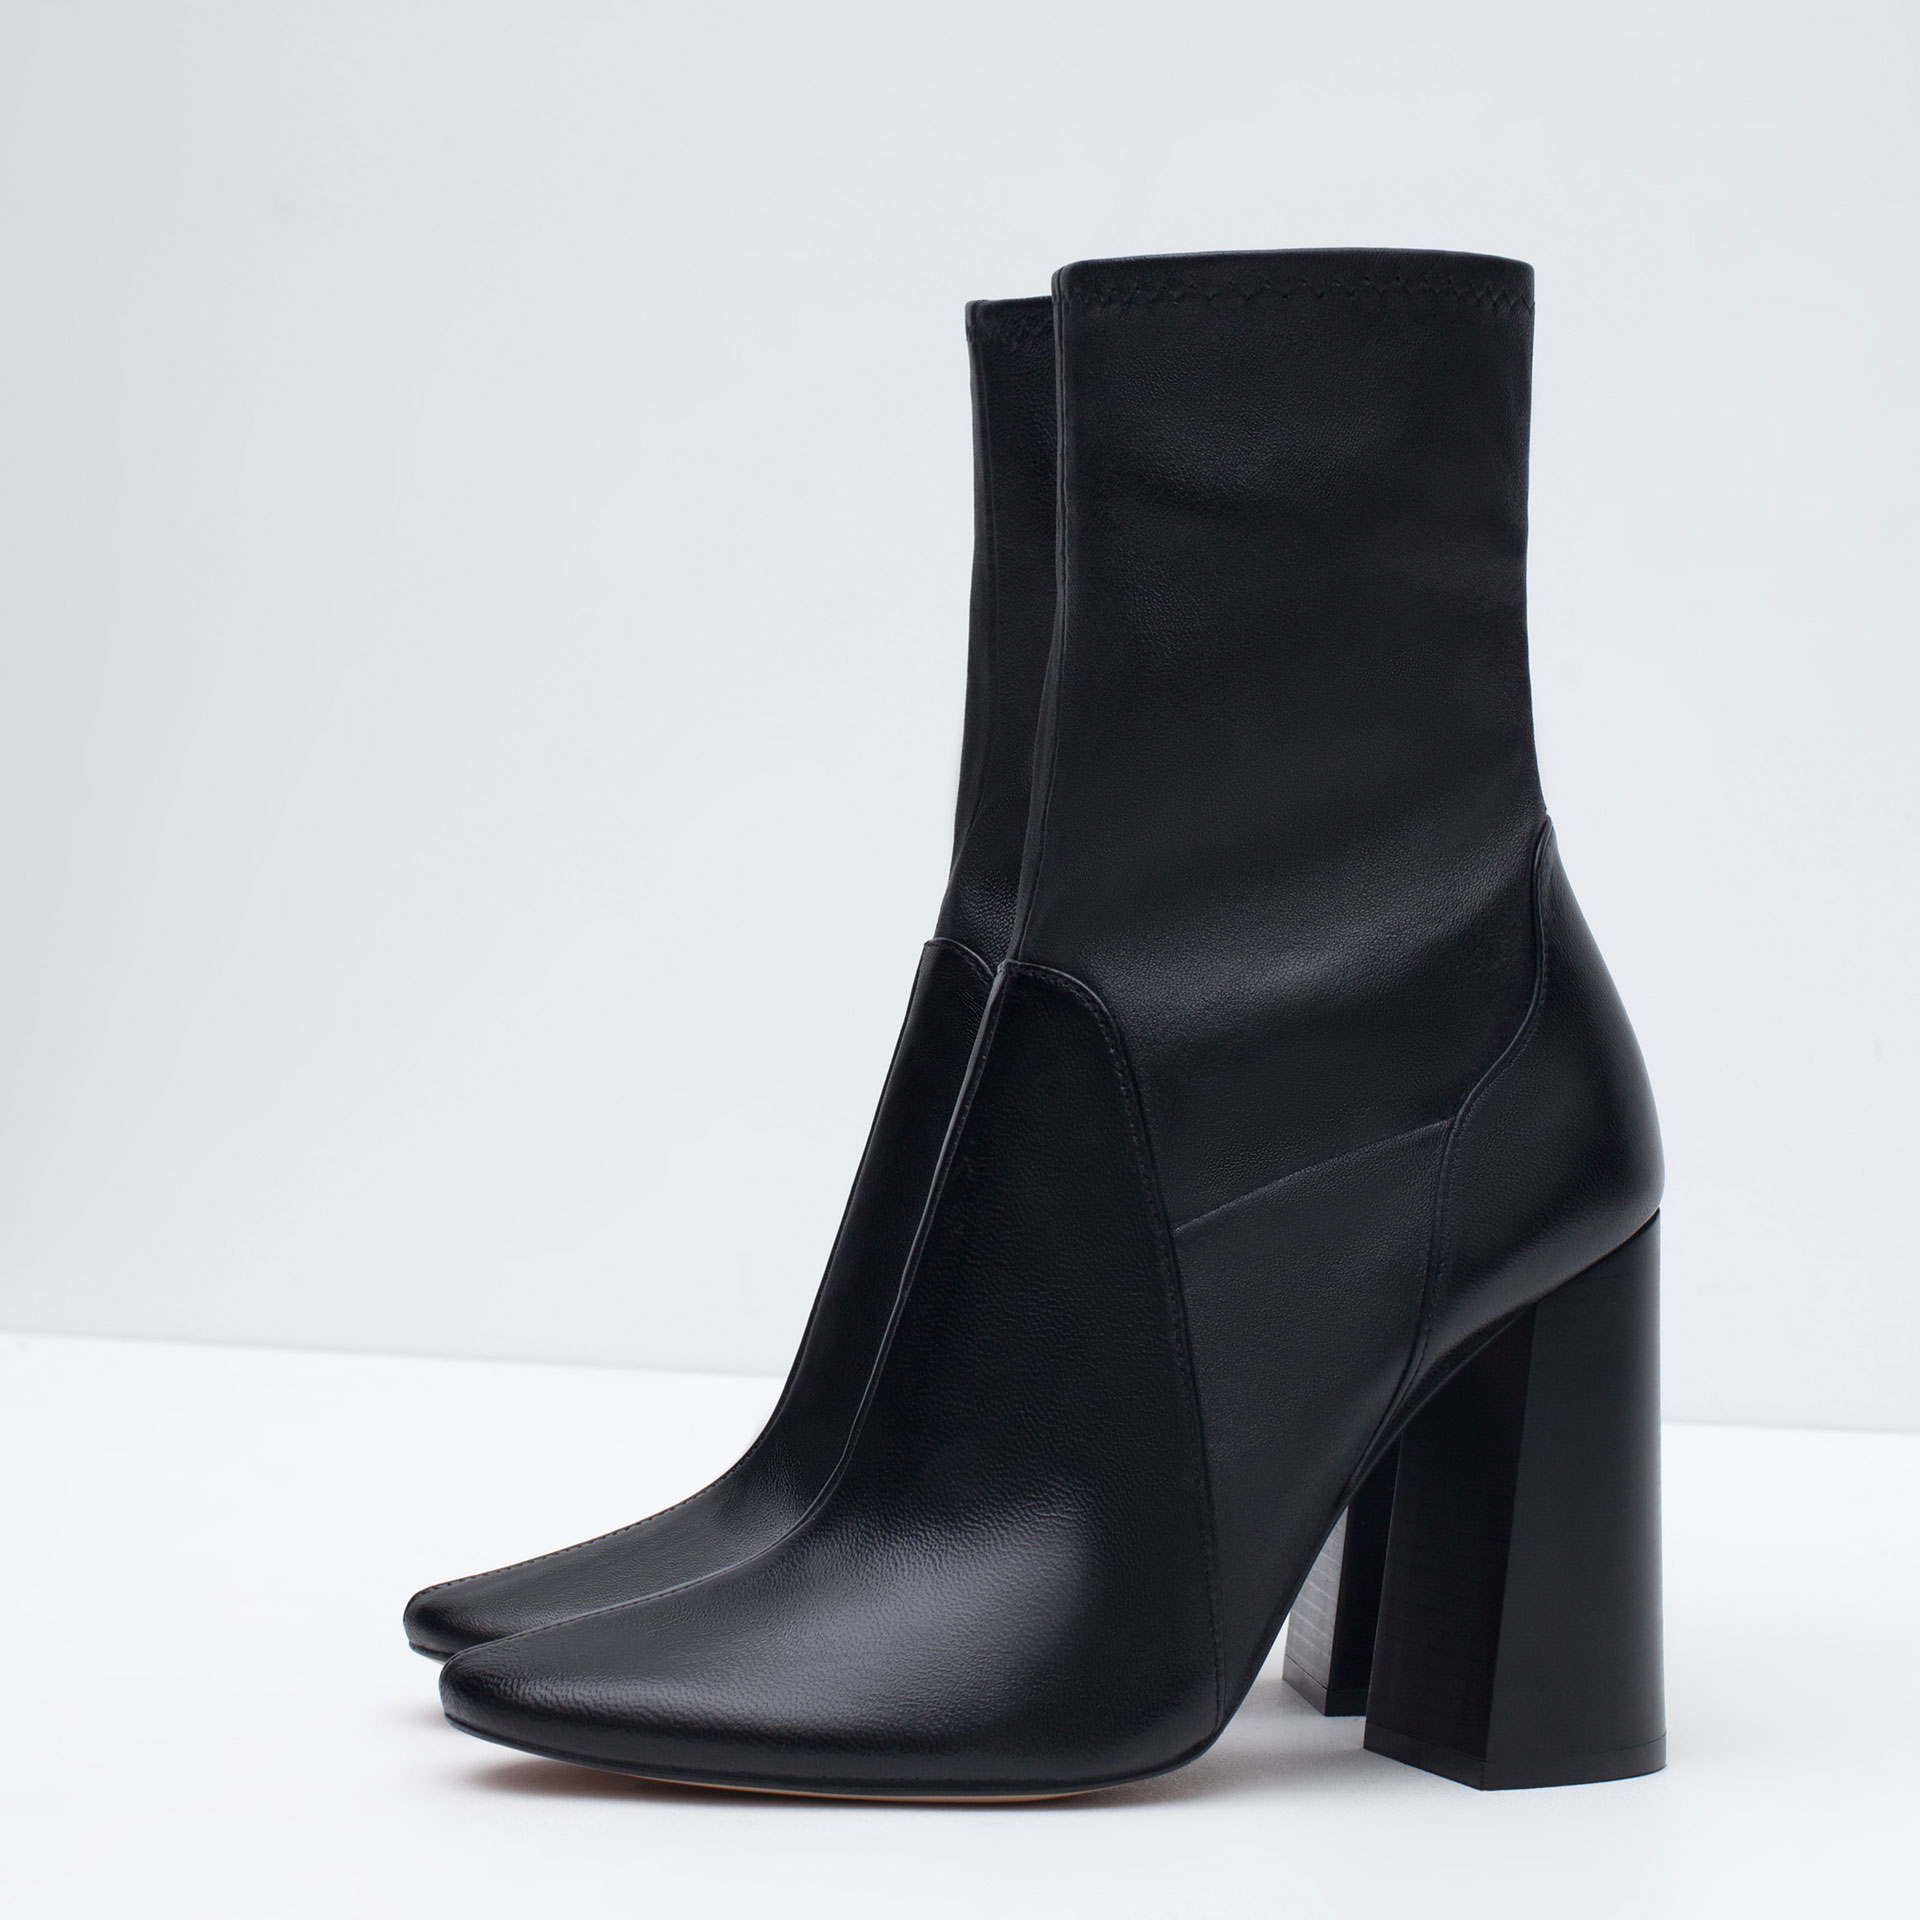 Step to the beat of your own drum with our collection of women's ankle boots, with styles in black, brown, tan and more. From classic flat ankle boots in leather and suedette, to heeled ankle boots in Western and statement buckle styles, find your favourites from our latest range.